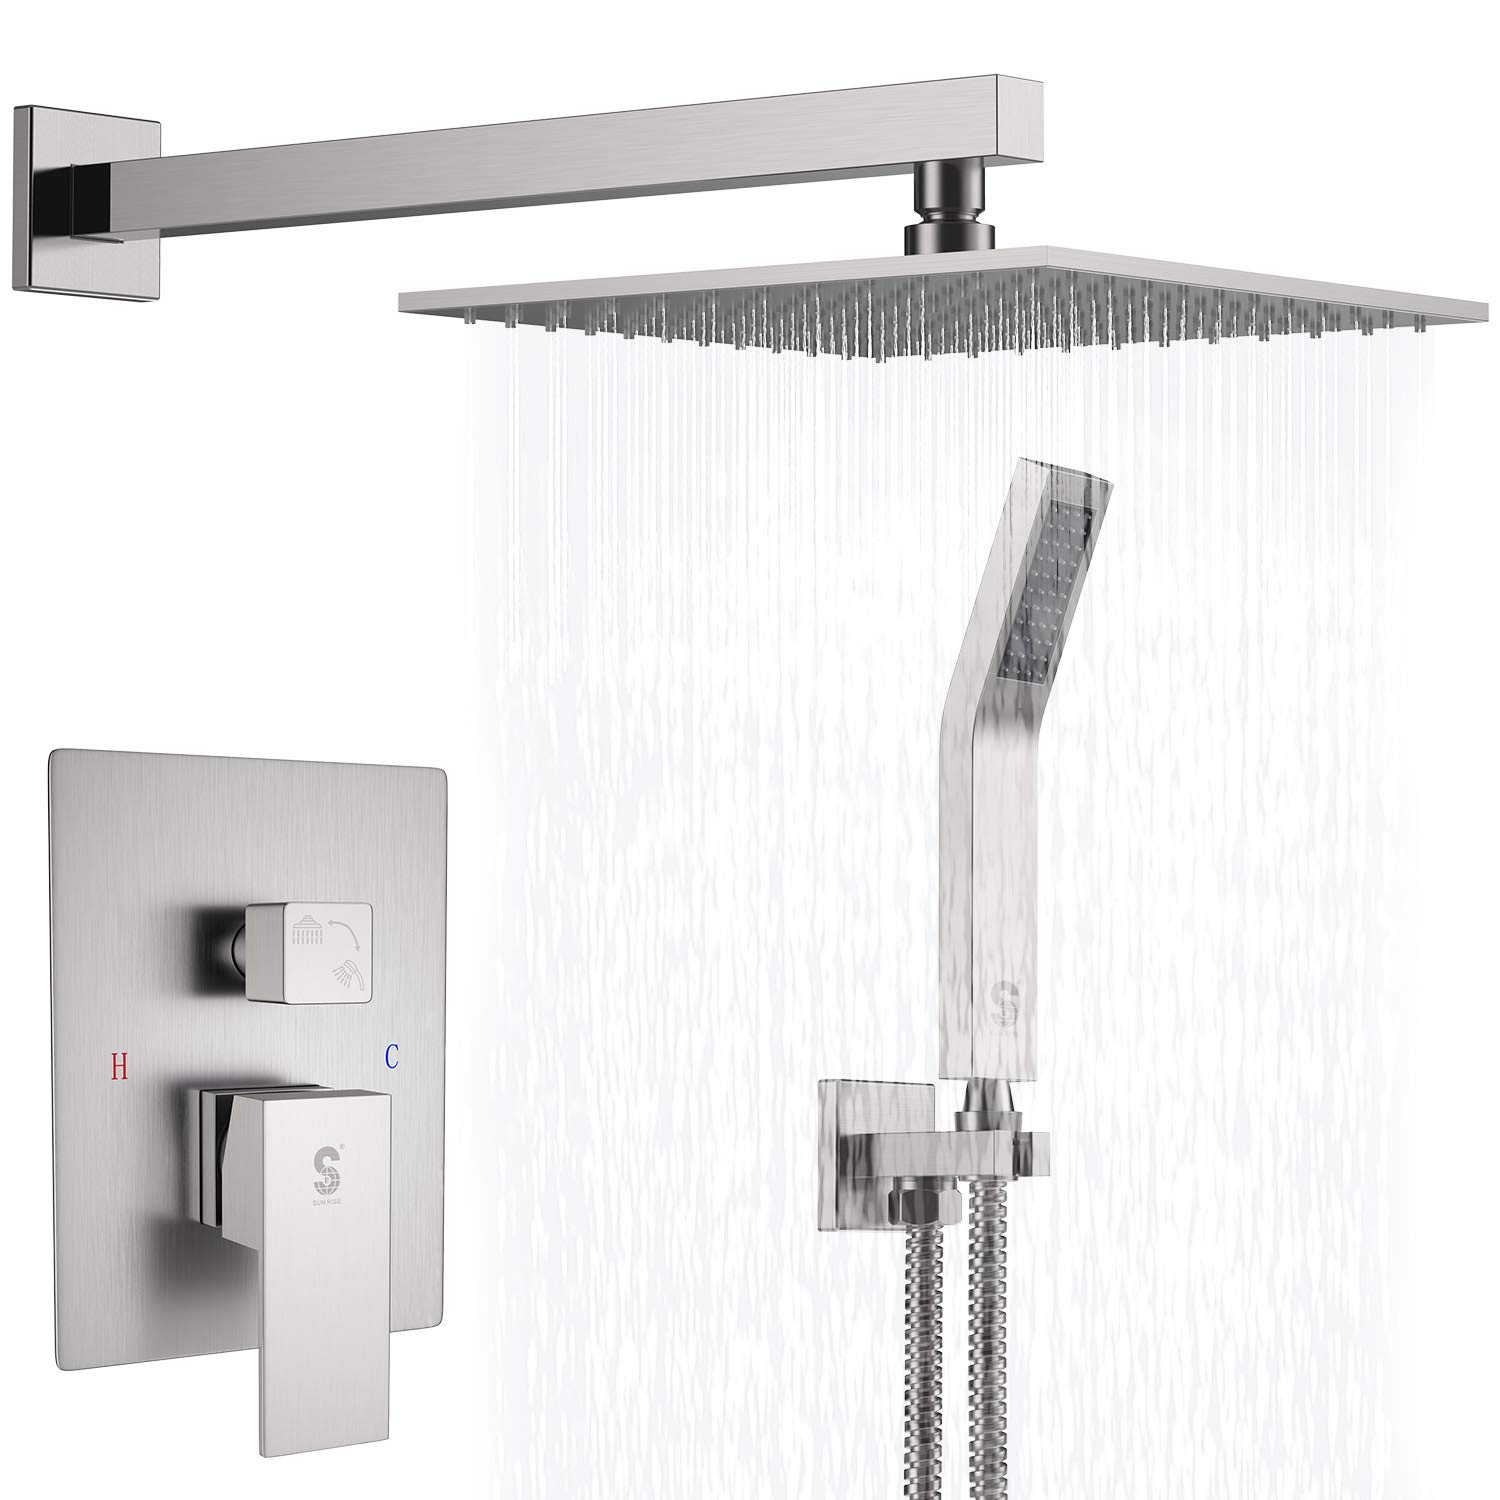 SR SUN RISE Brass Shower System 10 Inch Bathroom Luxury Rain Mixer Shower Combo Set Wall Mounted Rainfall Shower Head Systems Brushed Nickel Finish